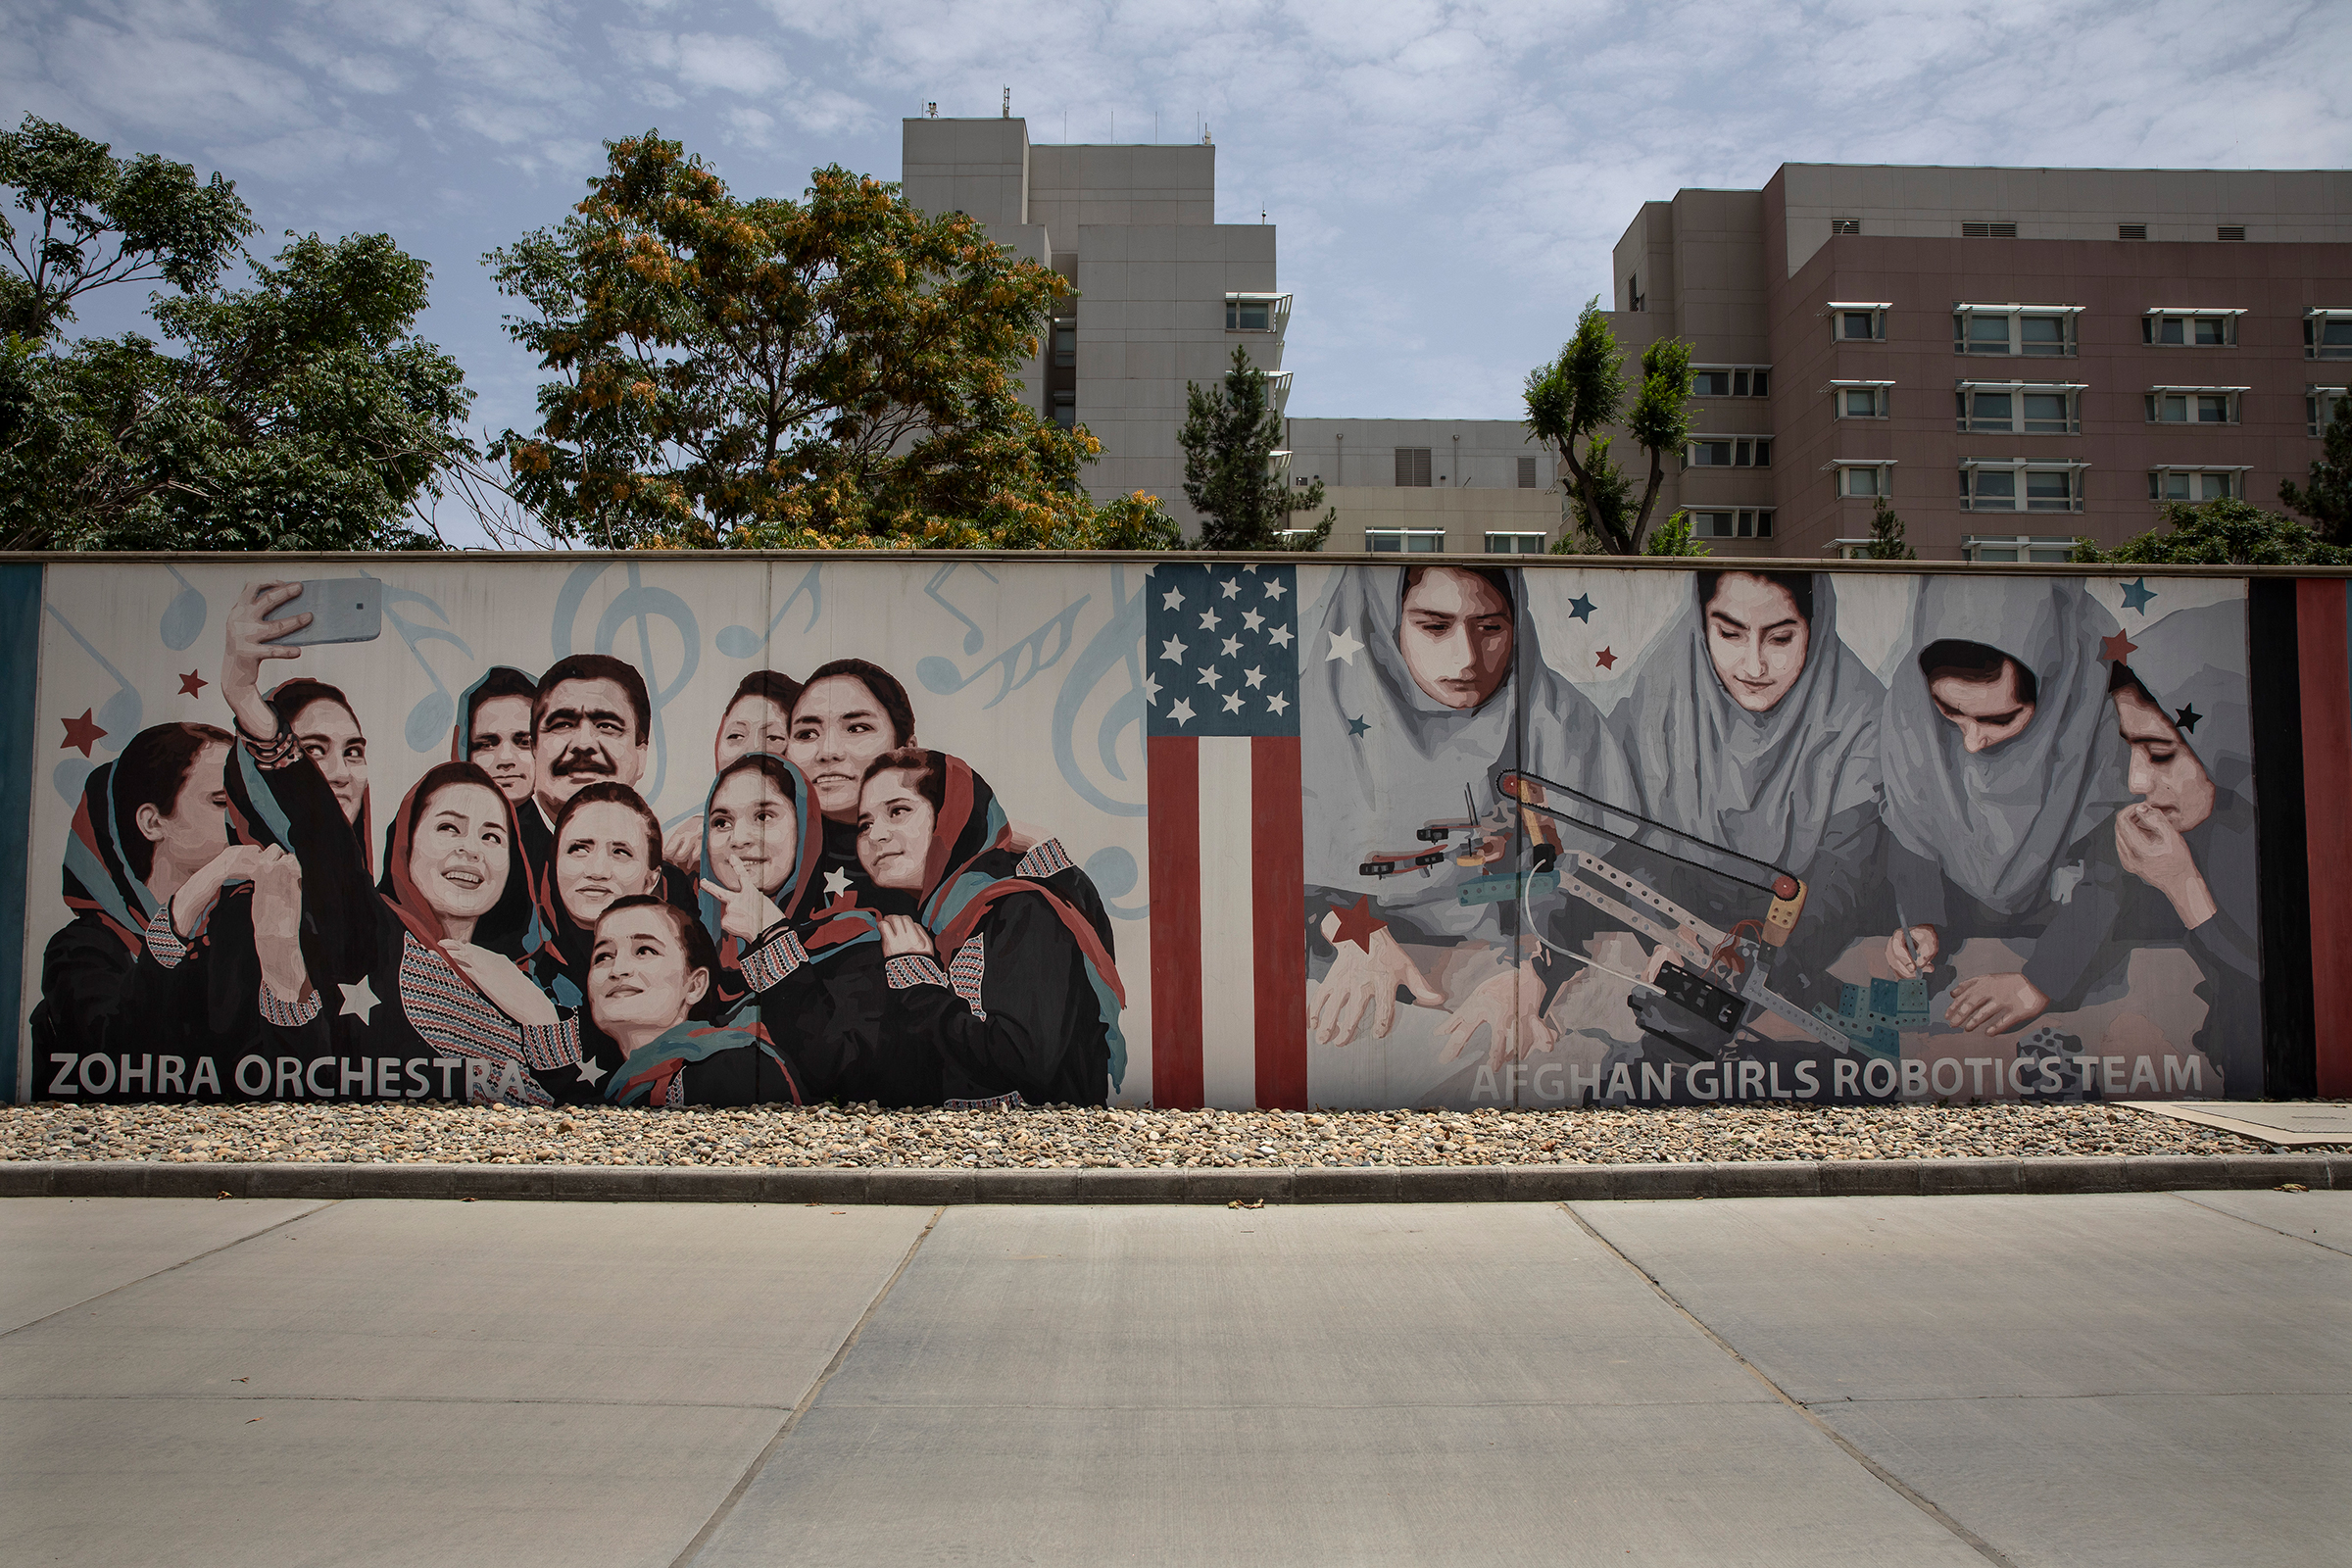 Murals are seen along the walls at the U.S. embassy in Kabul on July 30. In August, as the Taliban approached, staffers at the embassy scrambled to leave.